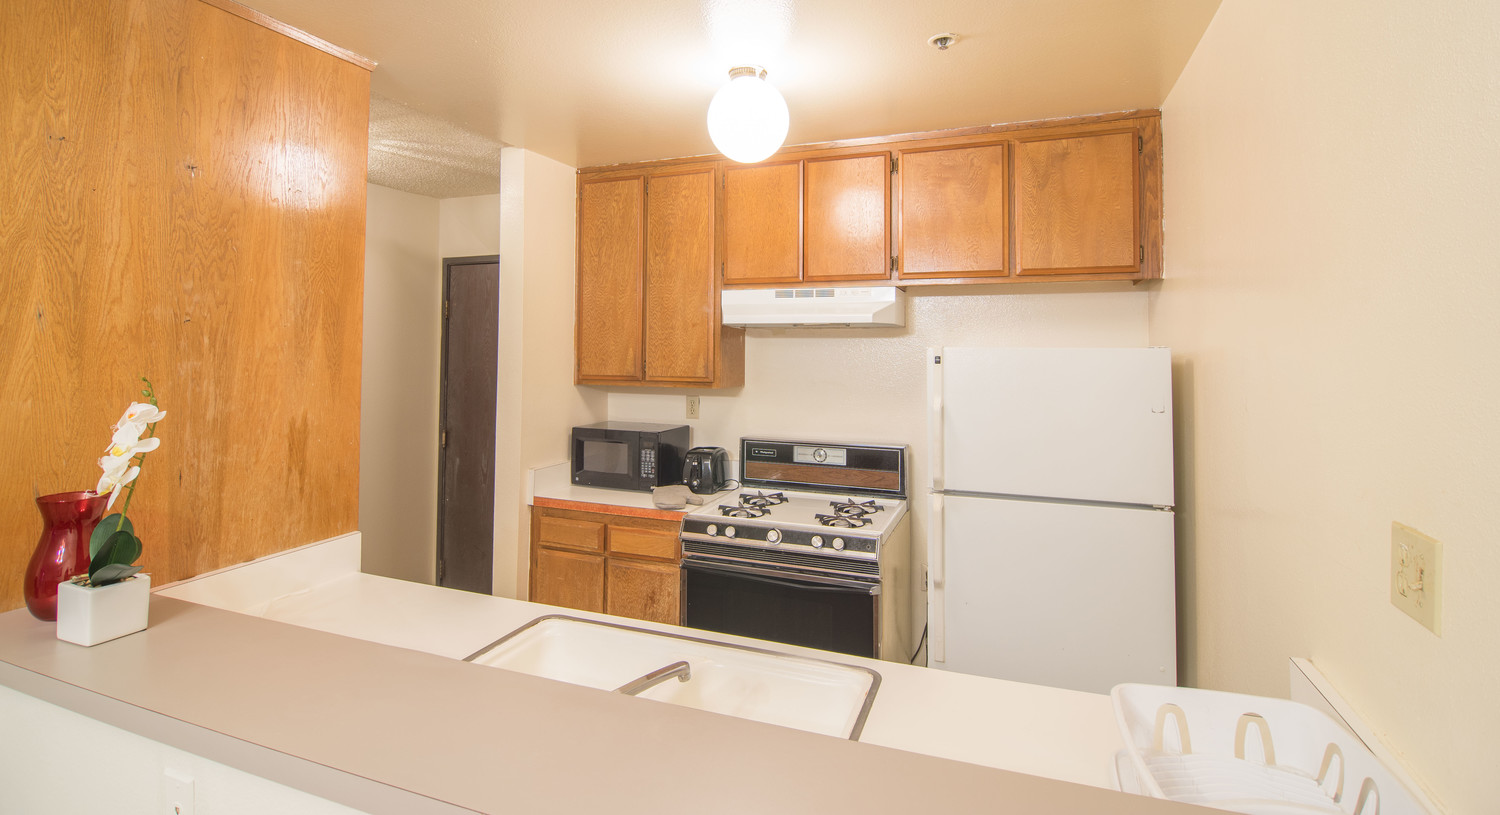 Private Room for Rent in 2Bed 2Bath Apartment in Westwood Gallery